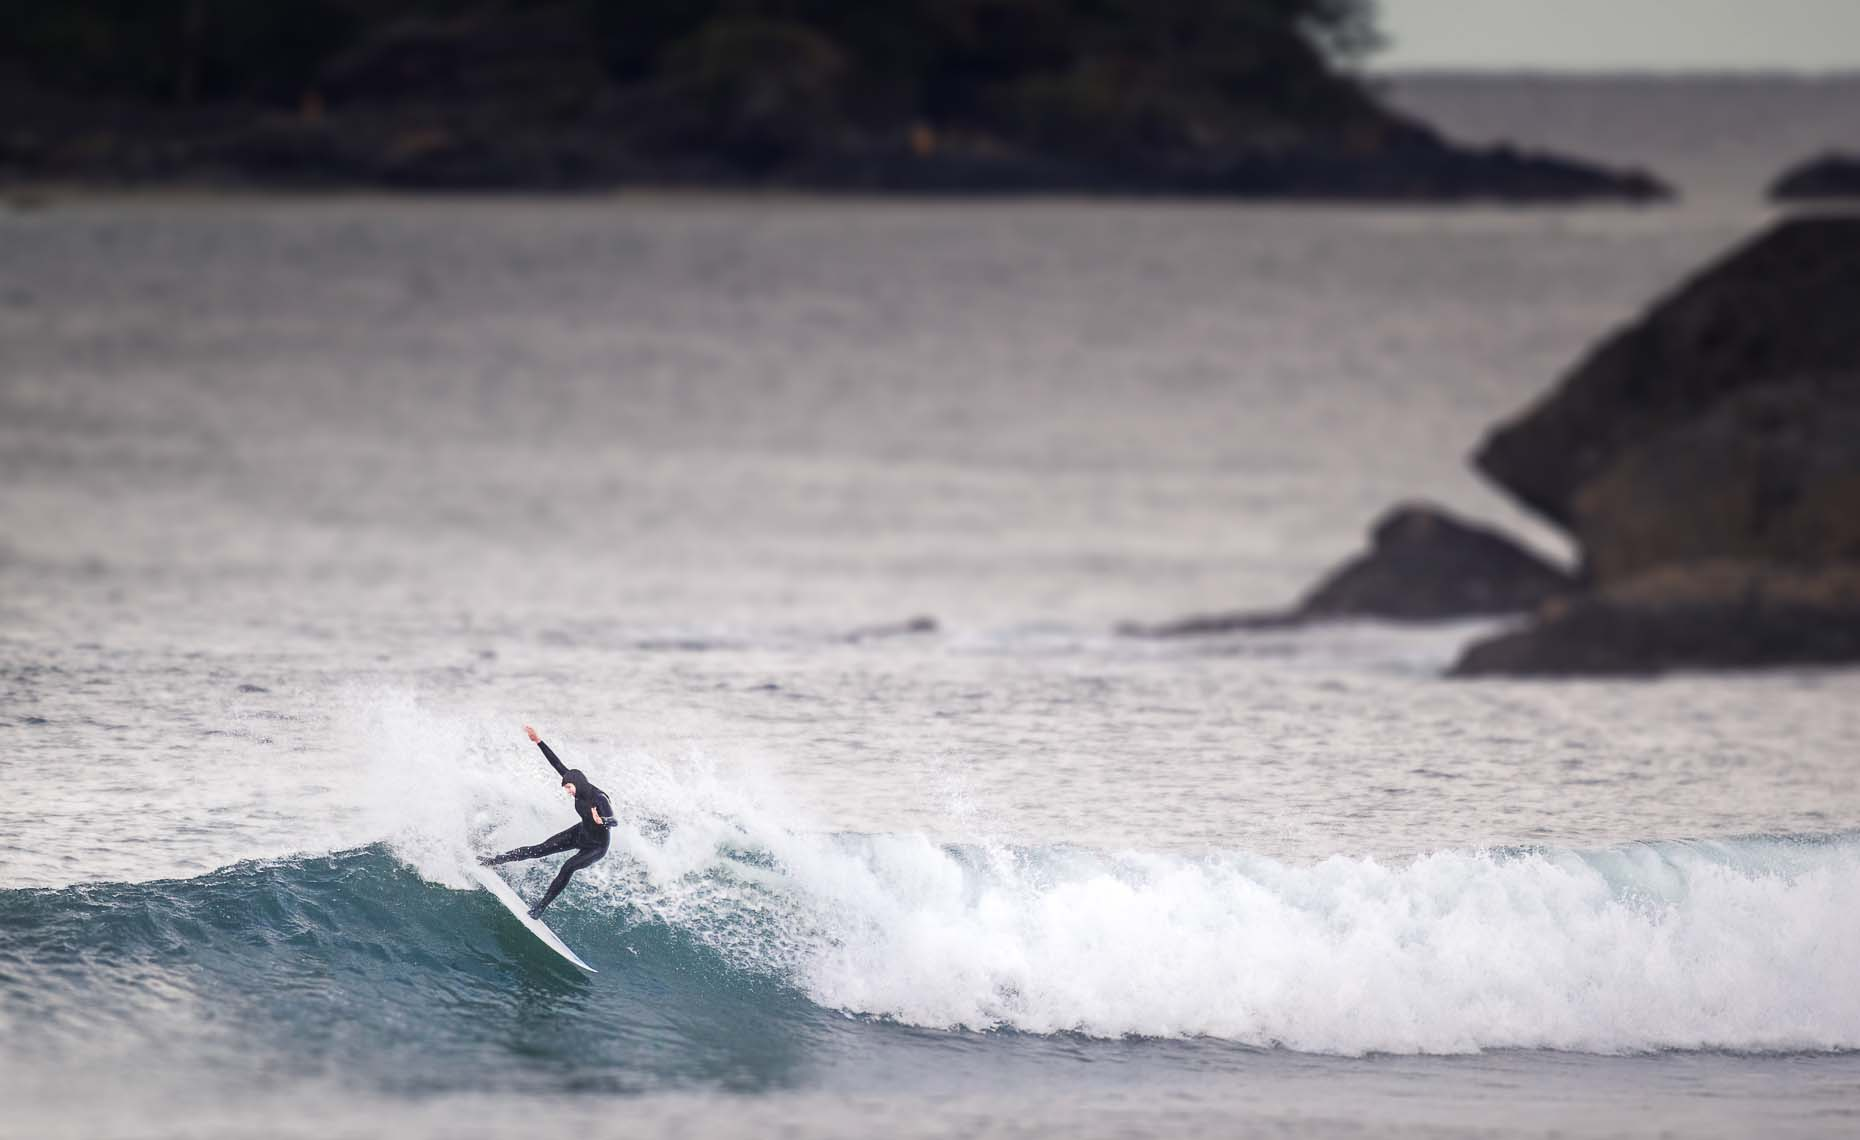 Womens surf action photography in tofino british columbia.